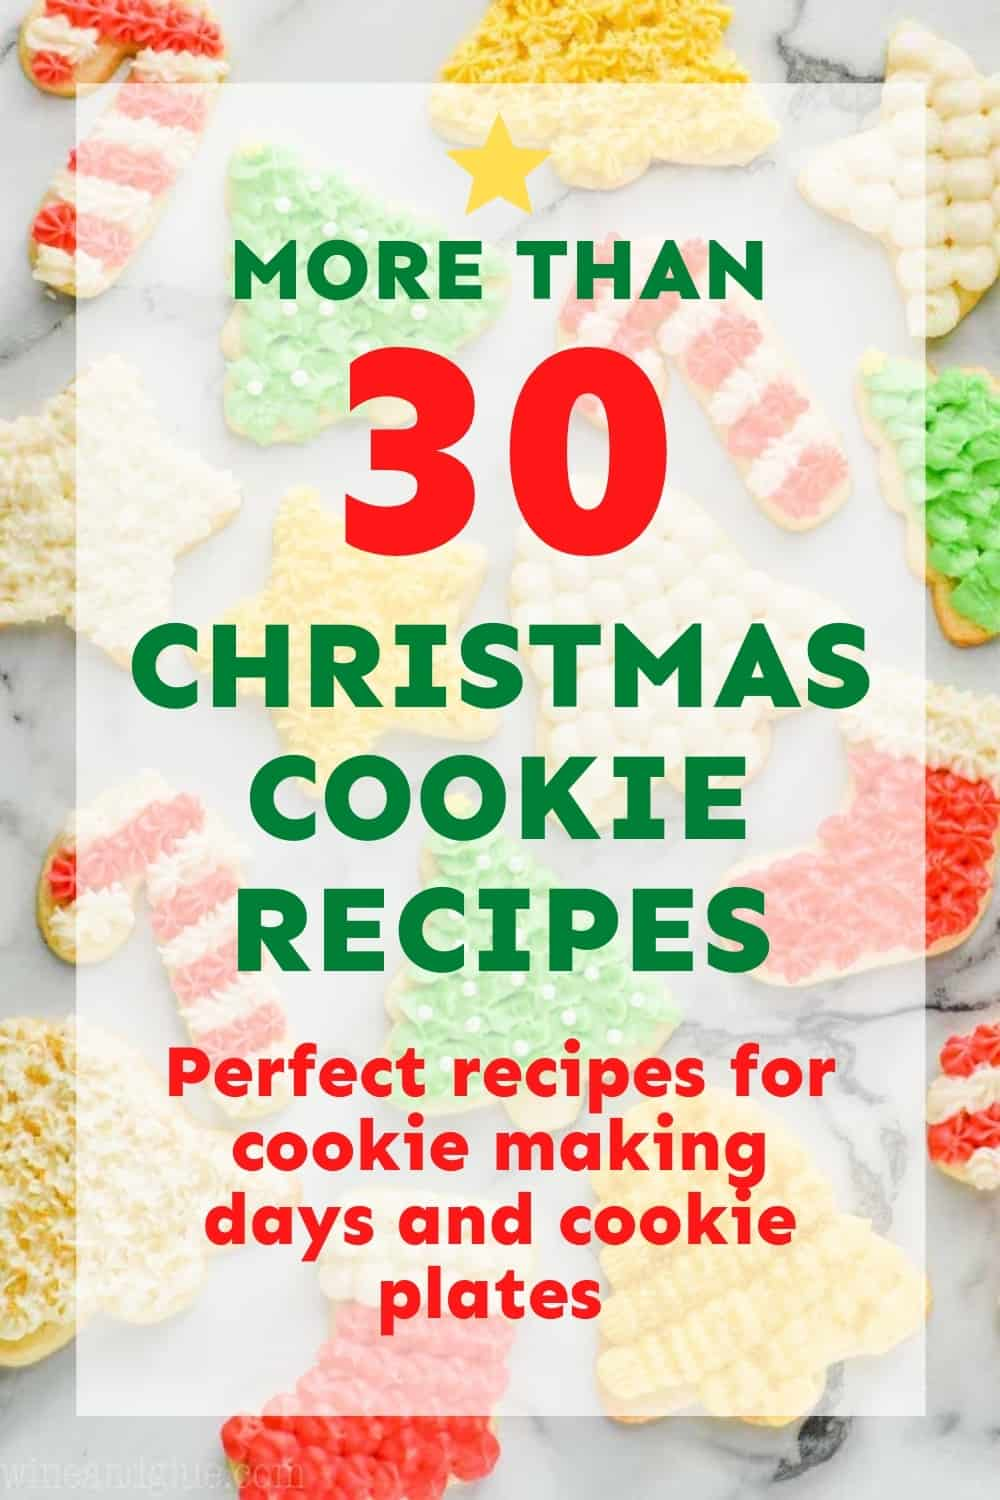 graphic saying more than 30 Christmas cookie recipes, perfect recipes for cooking making days and cookie plates